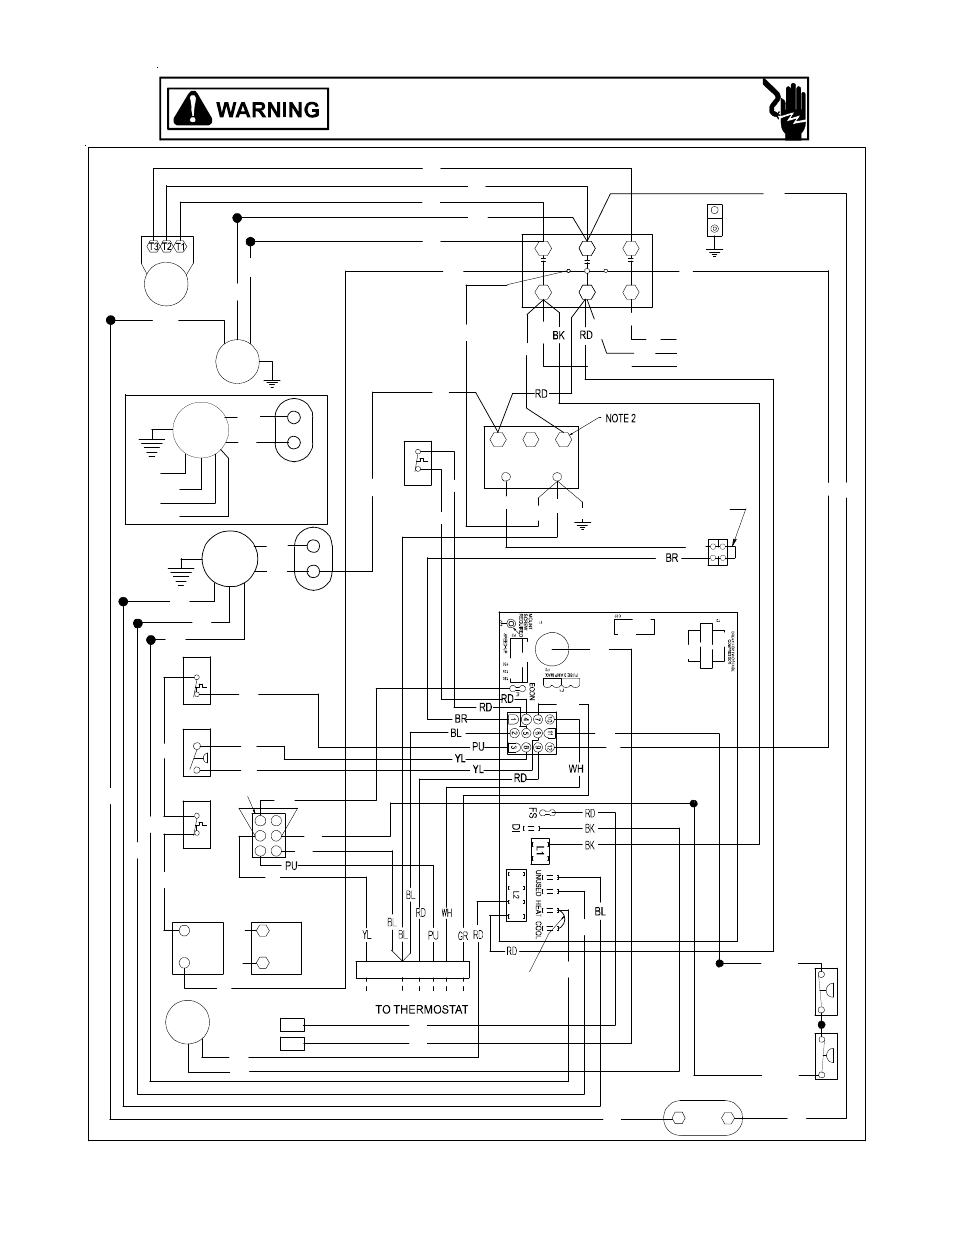 Janitrol Unit Heater Wiring Diagram Diagrams A C Weather King Garage Installation